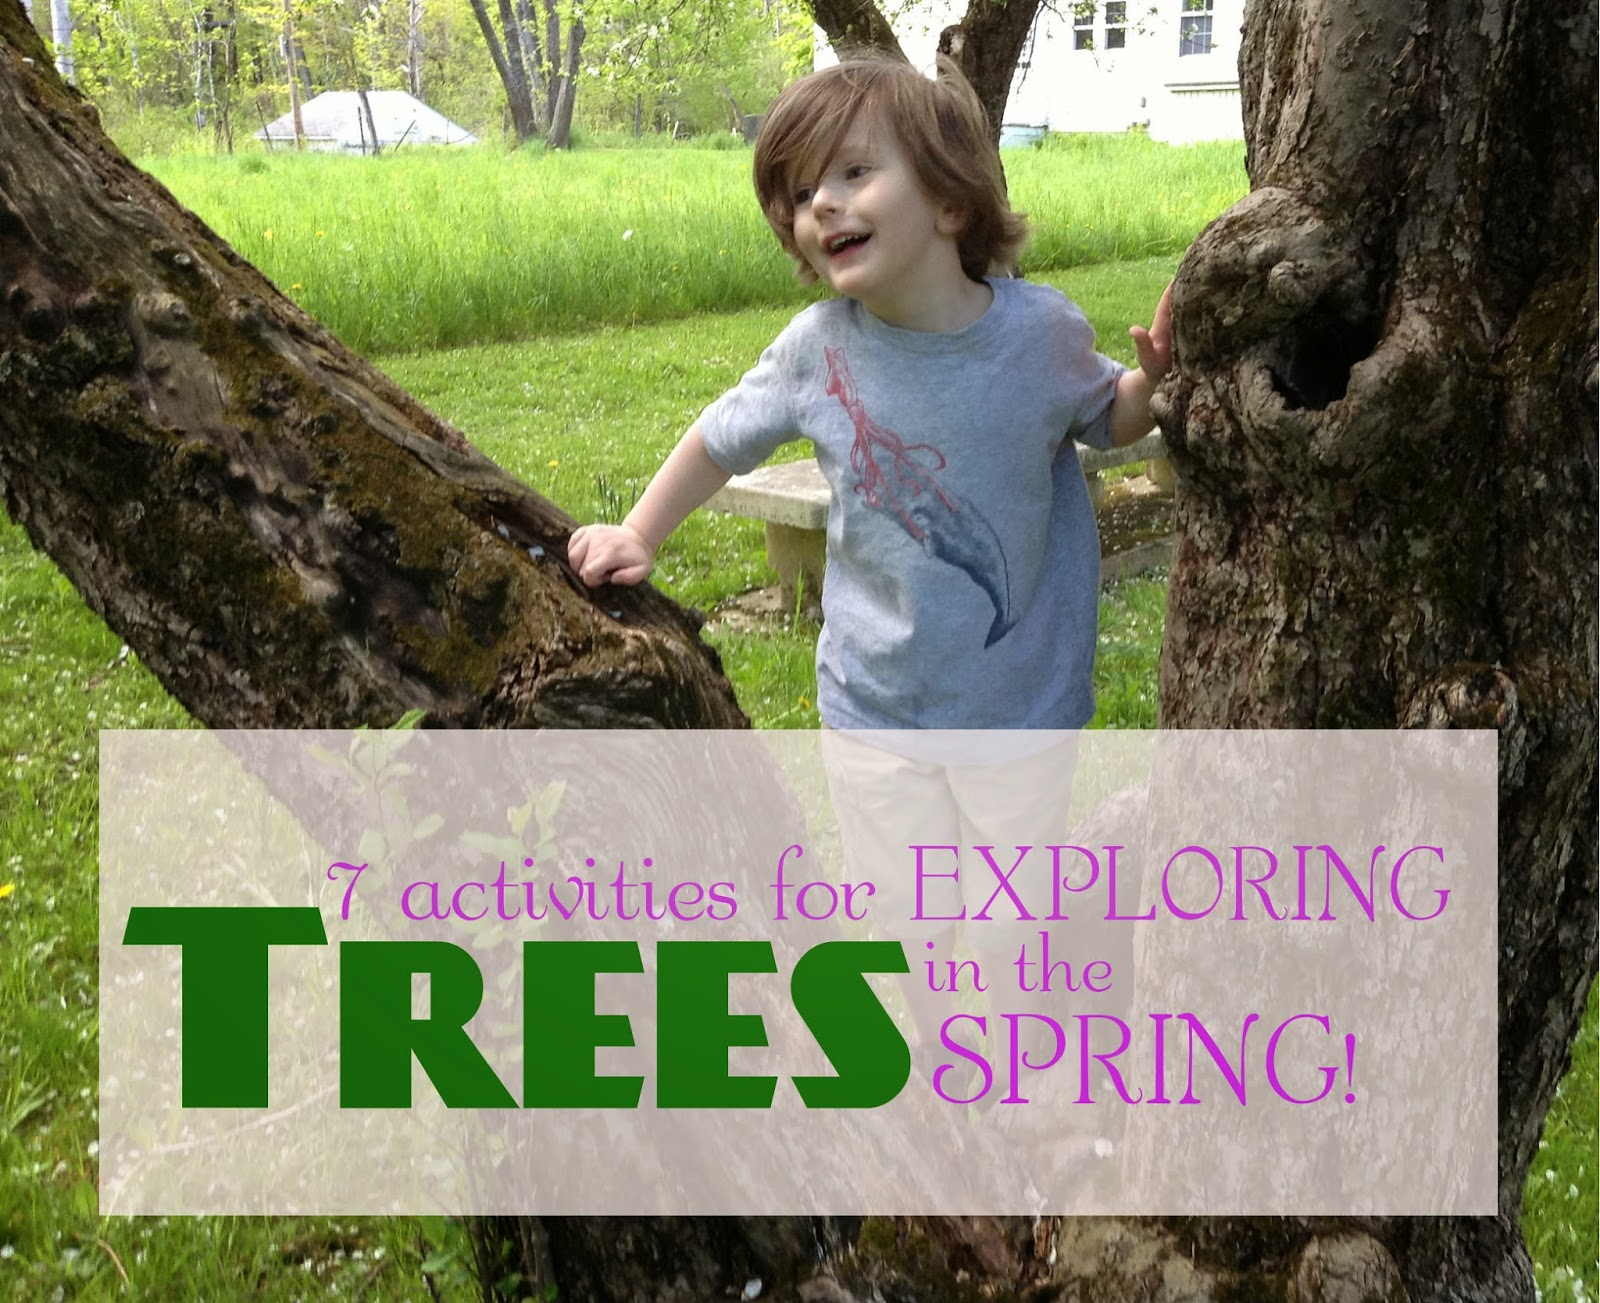 Get outside & explore the changing trees this spring with these 7 activities. (free printable)